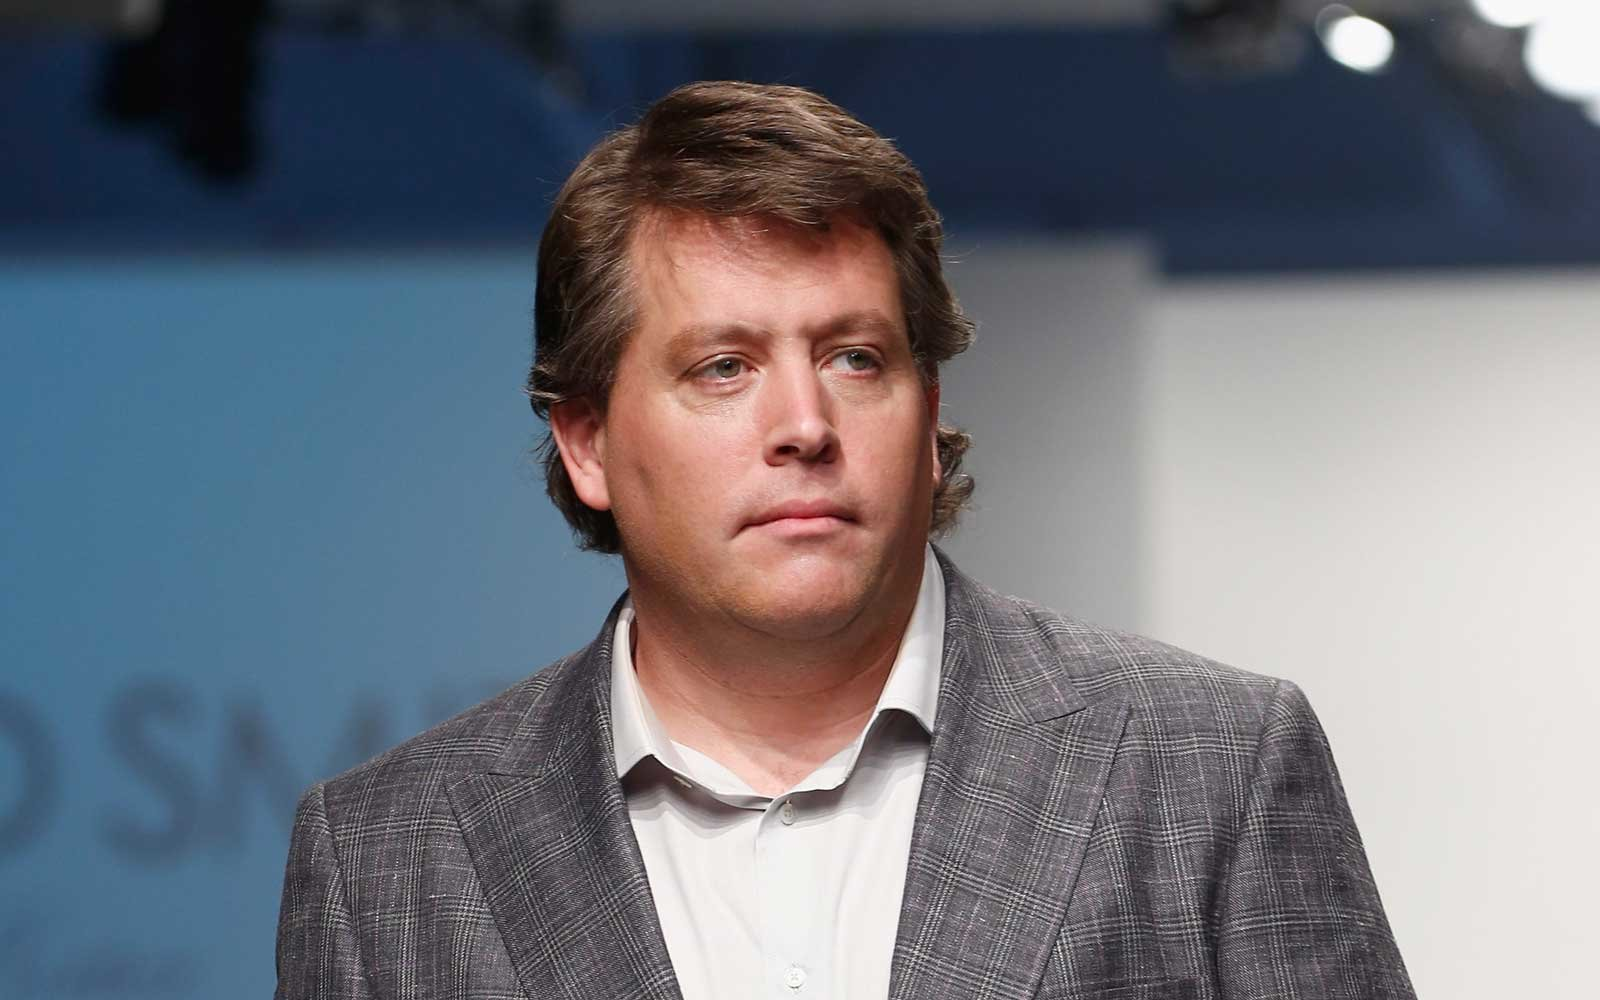 Peter Shankman, Social Media personality and Founder of HARO, walks the runway during the Richard Smith Pret a Porter show during Nolcha Fashion Week New York at Pier 59 Studios on September 12, 2012 in New York City.